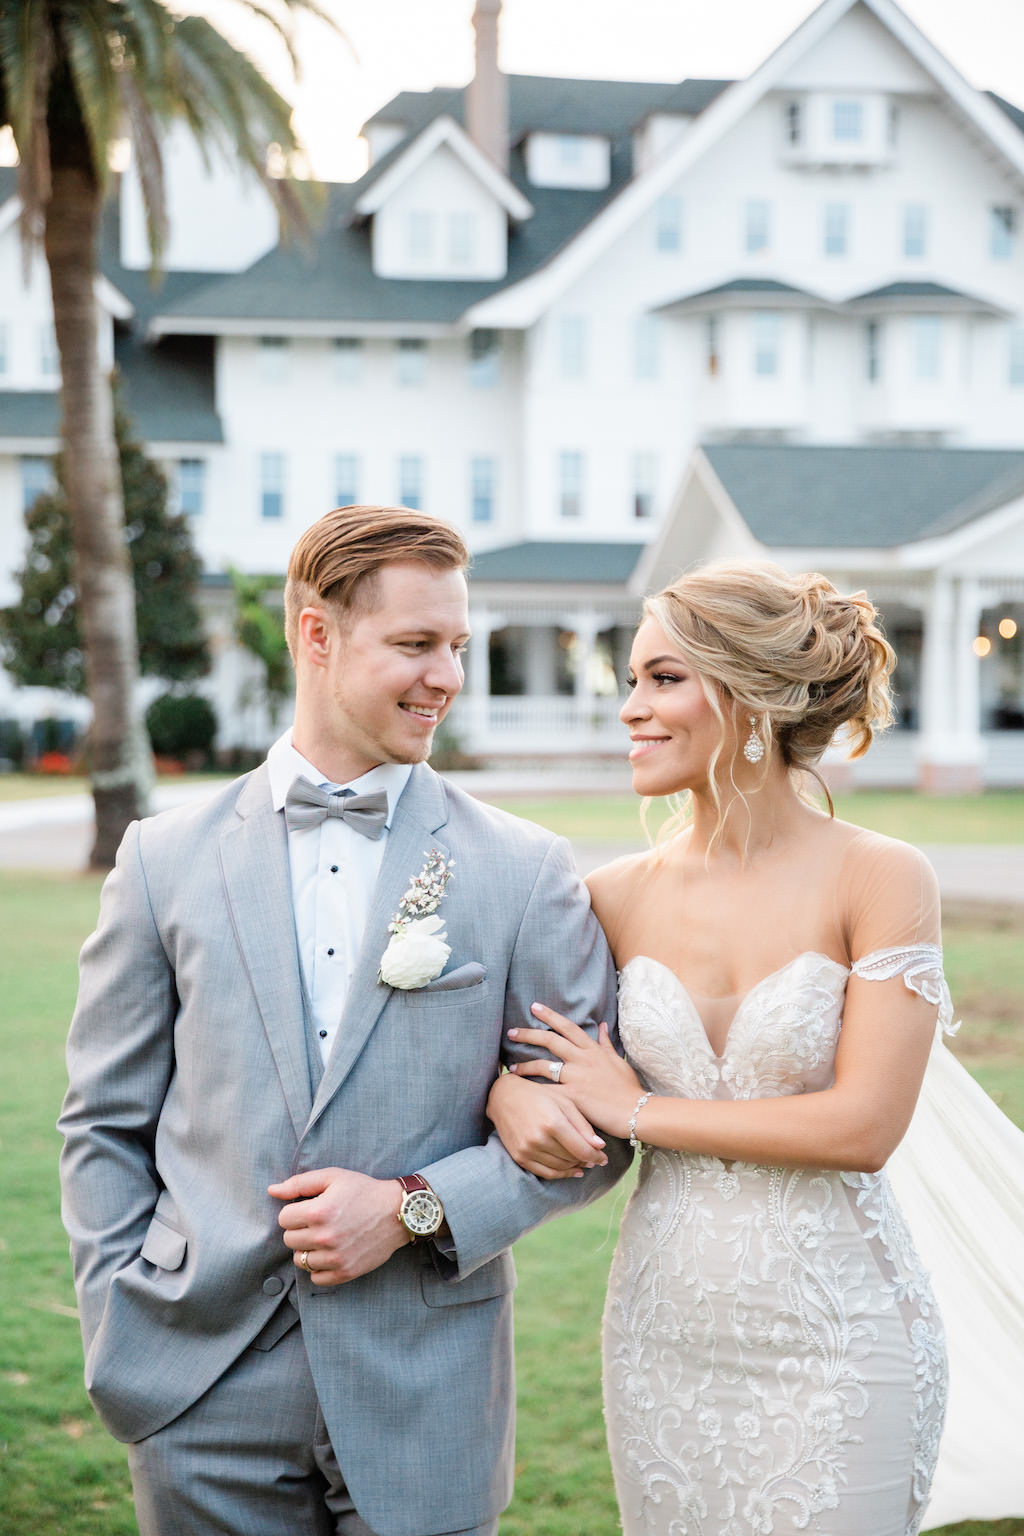 Romantic, Modern Florida Bride and Groom, Wearing White Fitted Mermaid Style Couture Wedding Dress, Light Gray Suite   Tampa Bay Hair and Makeup Artists Femme Akoi   Tampa Bay Couture Wedding Dress Boutique Isabel O'Neil Bridal Collection  